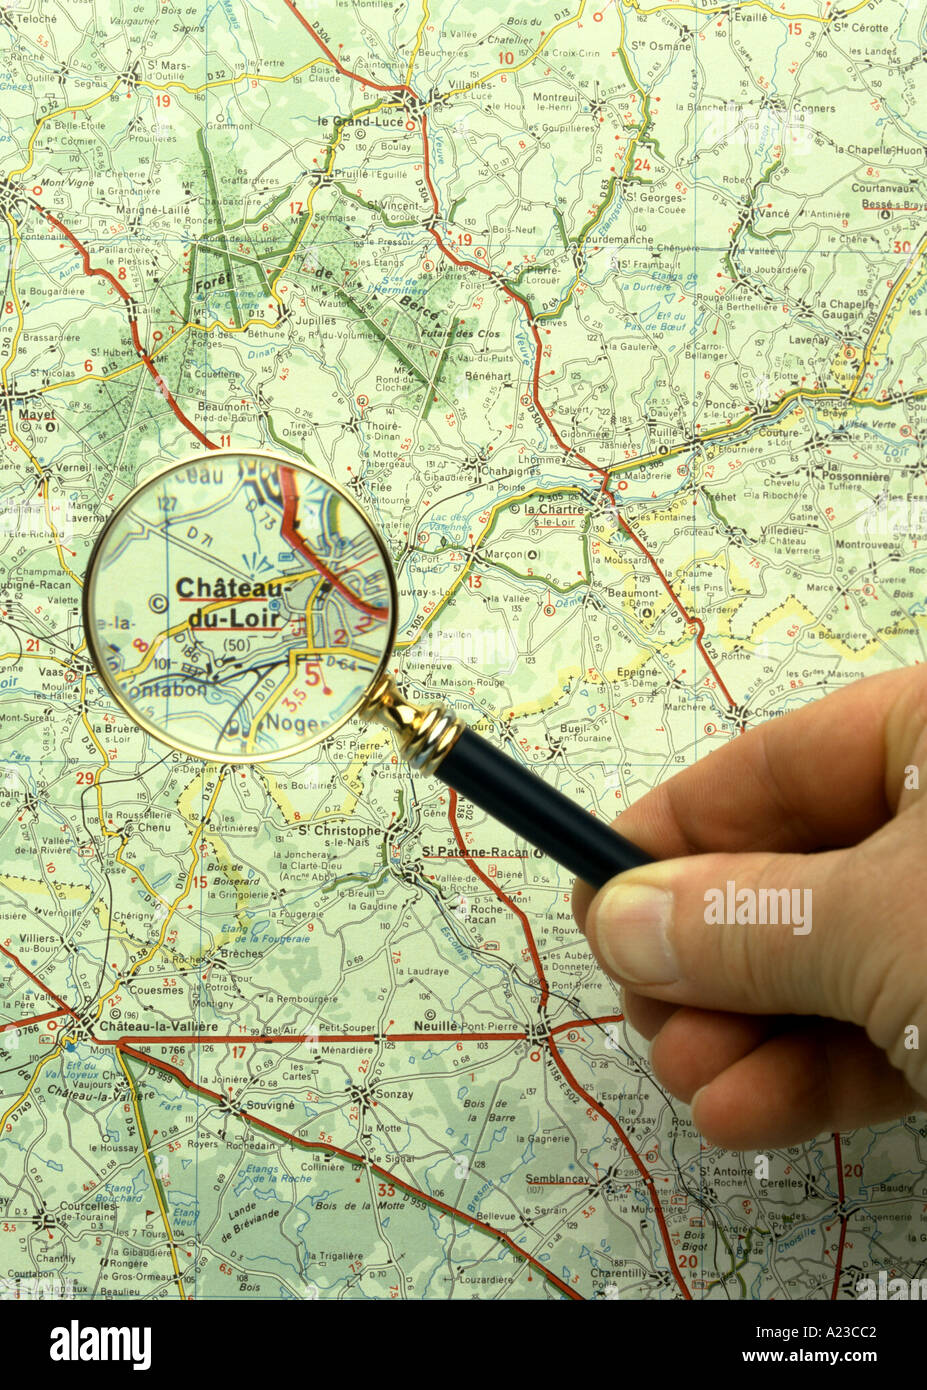 a magnifying glass being used to read a French map - Stock Image